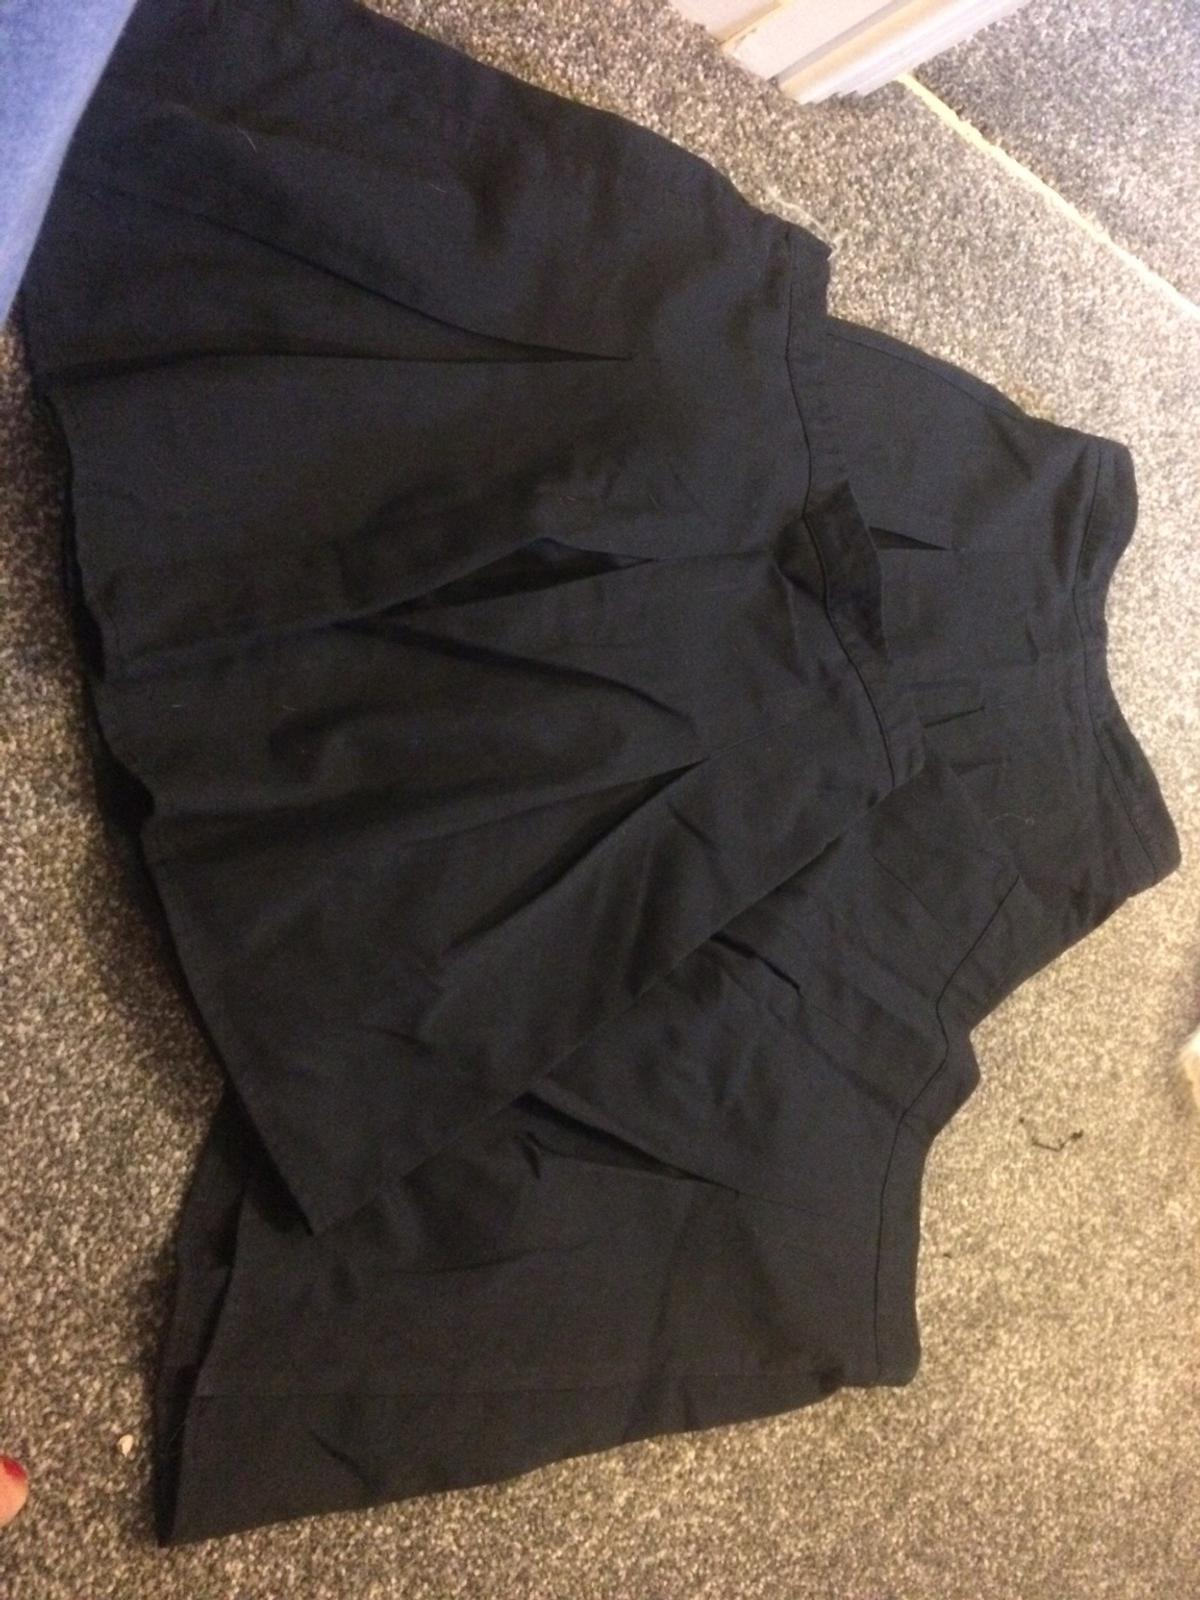 95c0561cfb Girls navy school skirts age 6 to 7 in Wakefield for £3.00 for sale ...